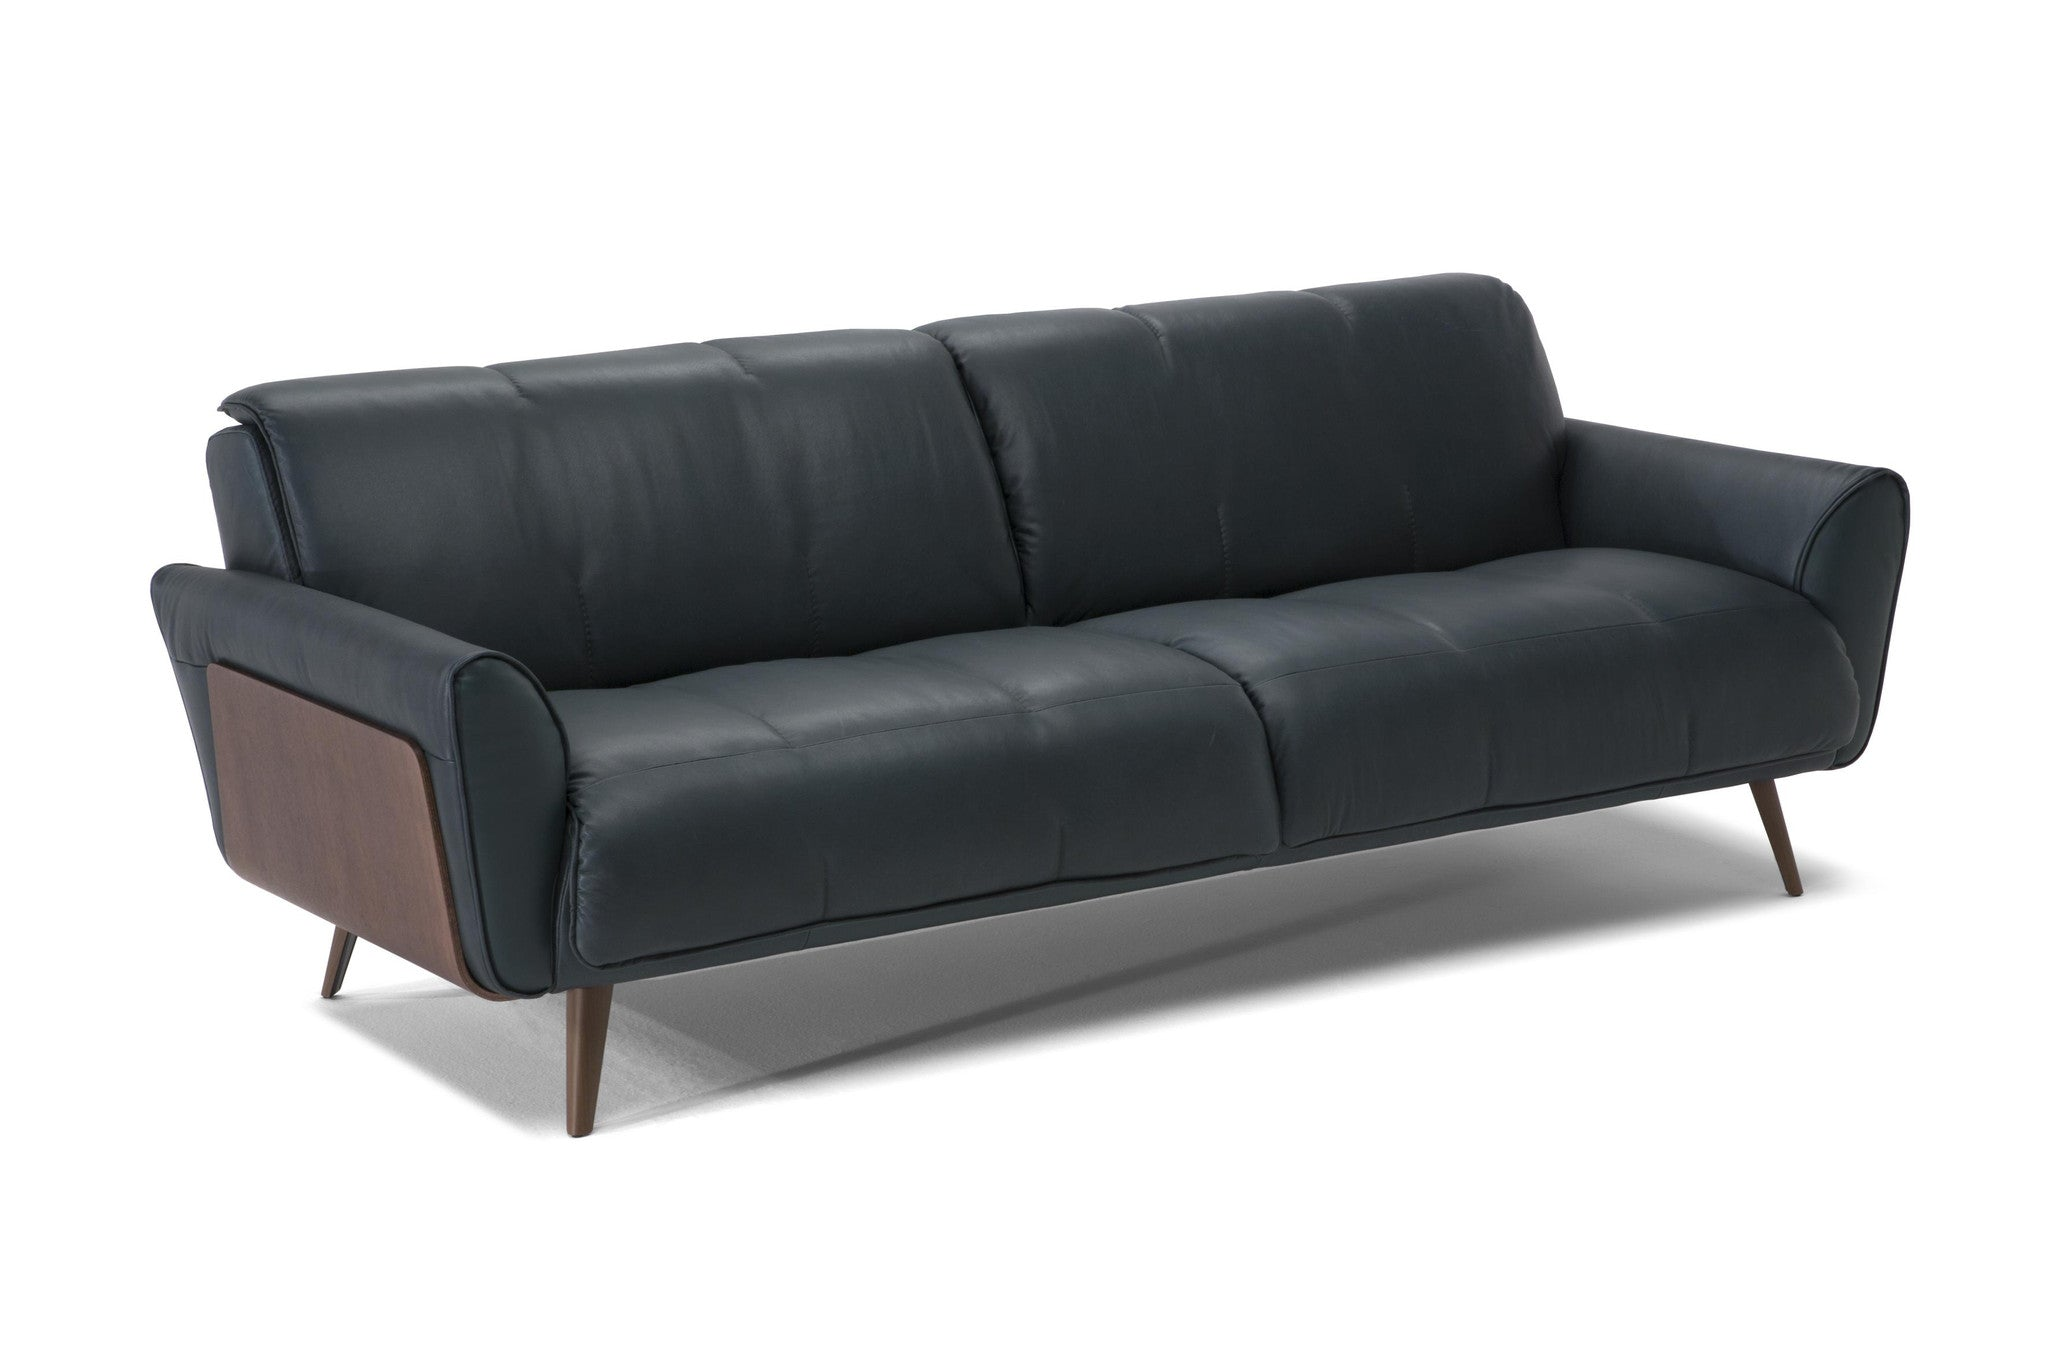 Natuzzi b993 mid century style large fabric sectional for Divano winchester